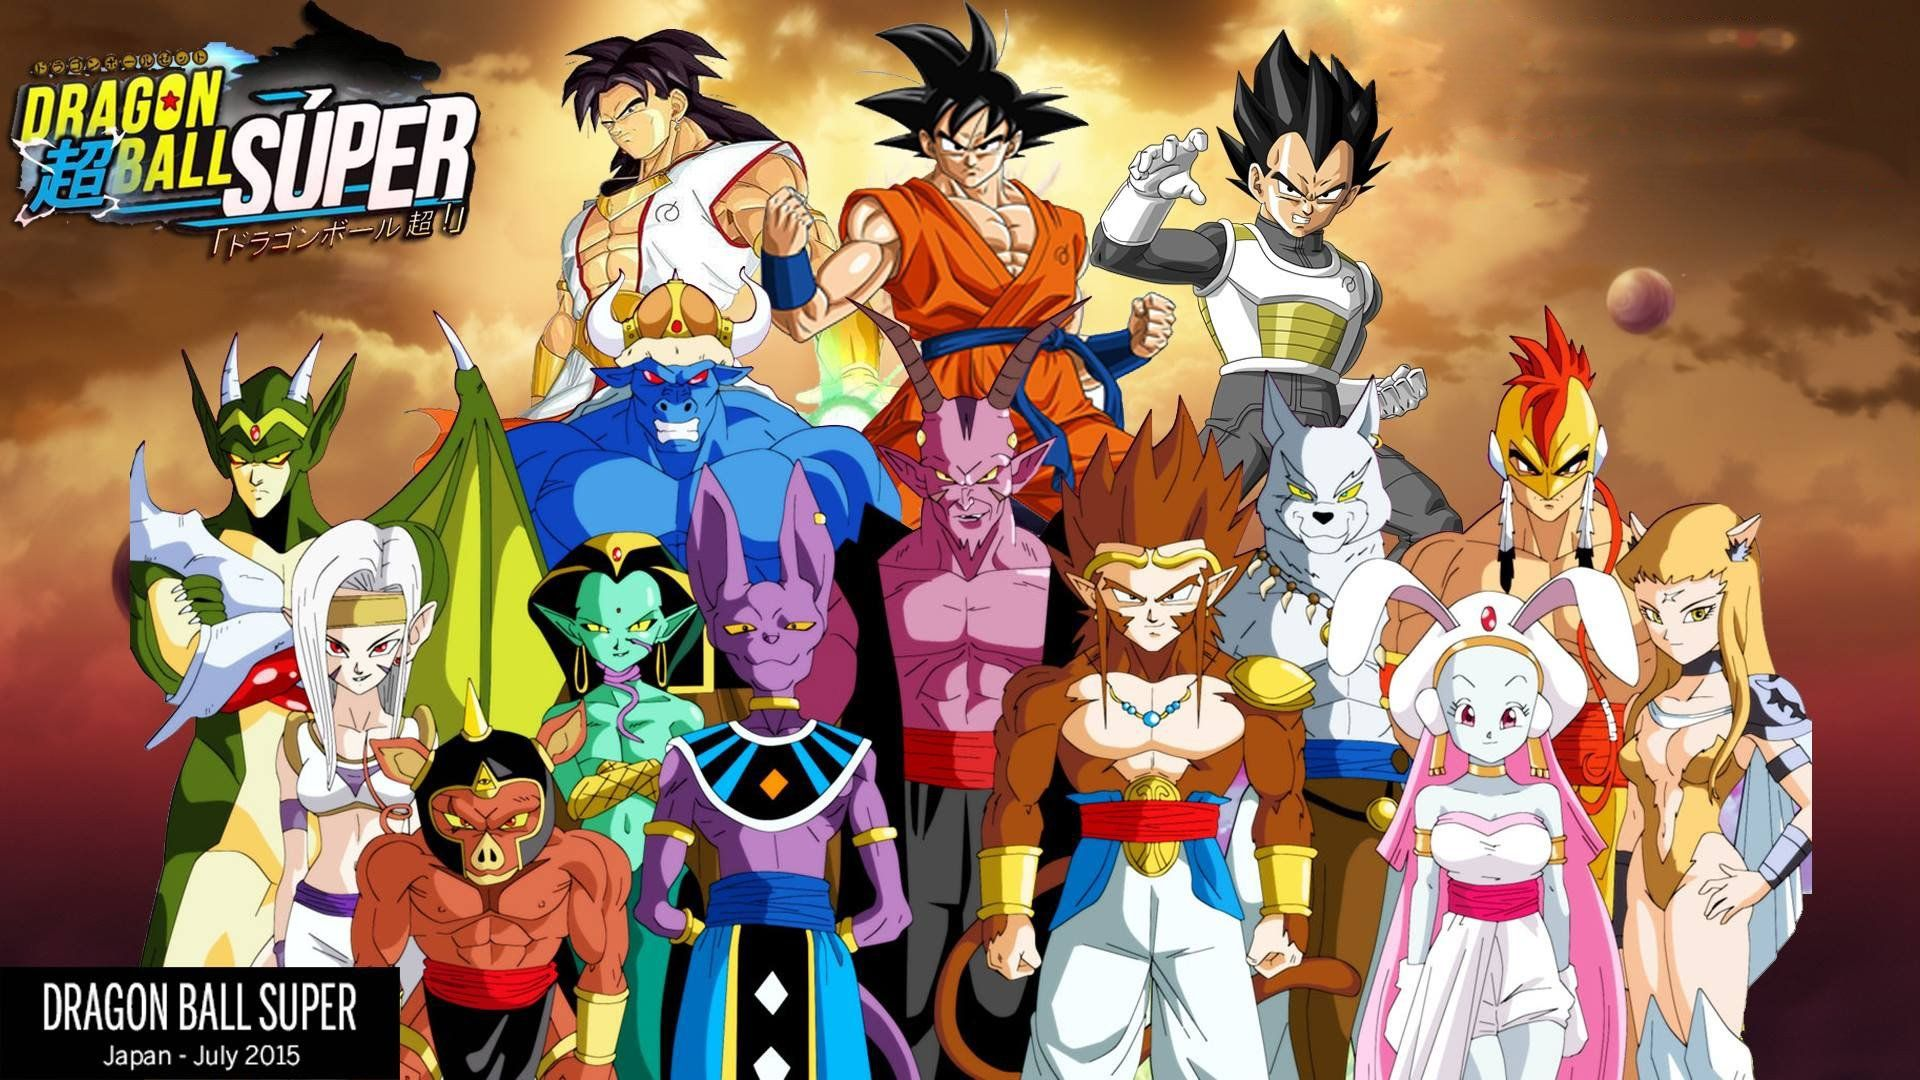 Most Inspiring Wallpaper High Resolution Dragon Ball Z - 83e2a3b29256b61544258799c762963c  You Should Have_121198.jpg